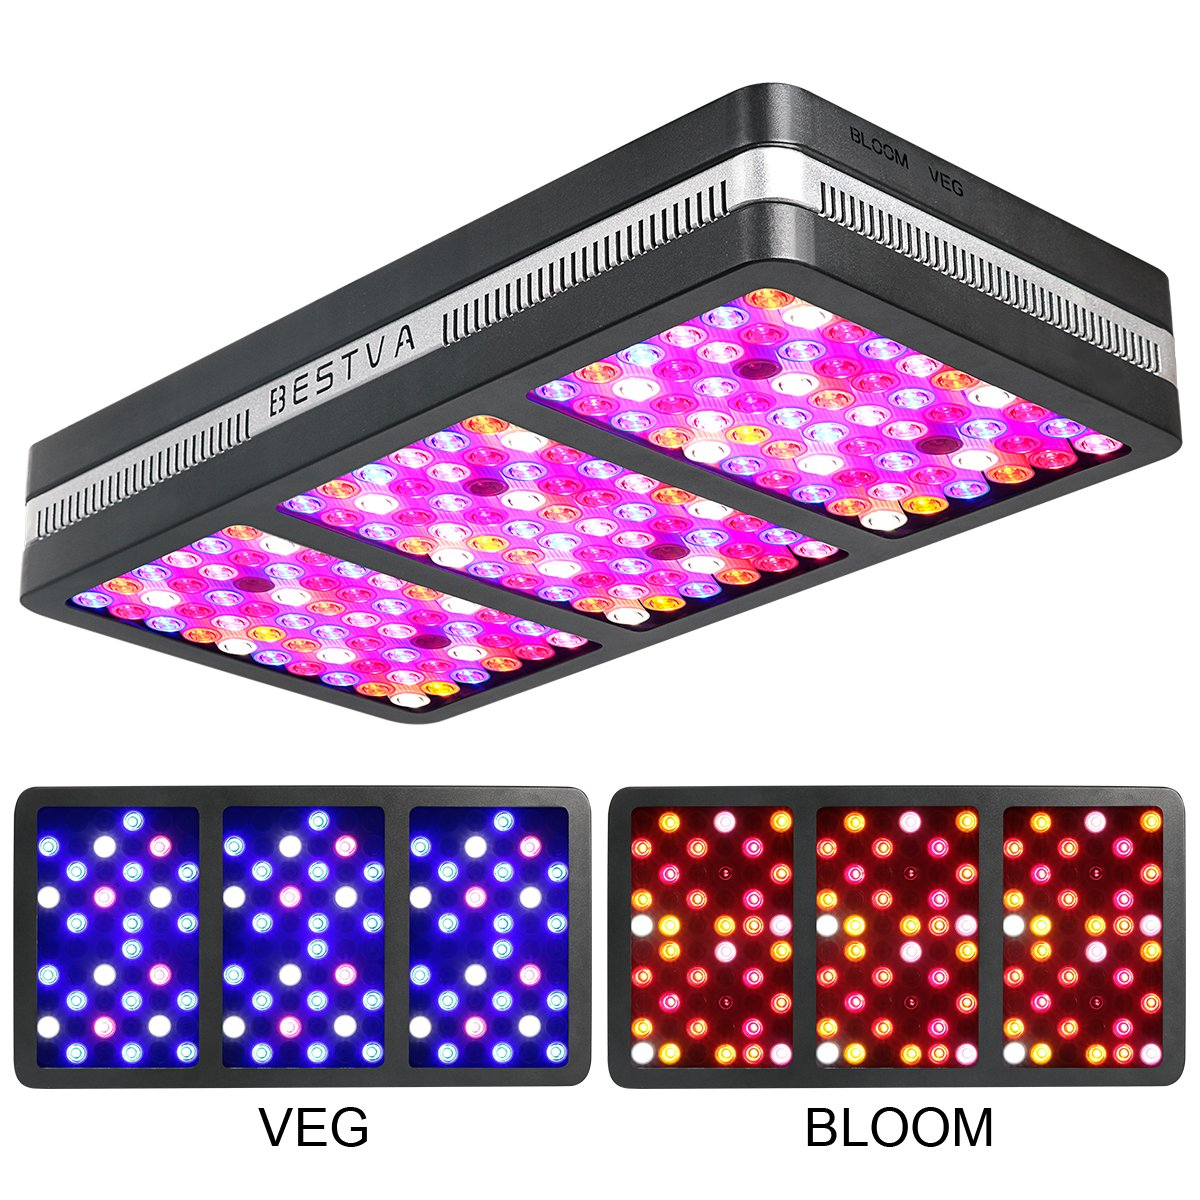 BESTVA Reflector Series 2000W LED Grow Light Full Spectrum Grow Lamp for Hydroponic Indoor Plants Veg and Flower (Elite-2000w) by BESTVA